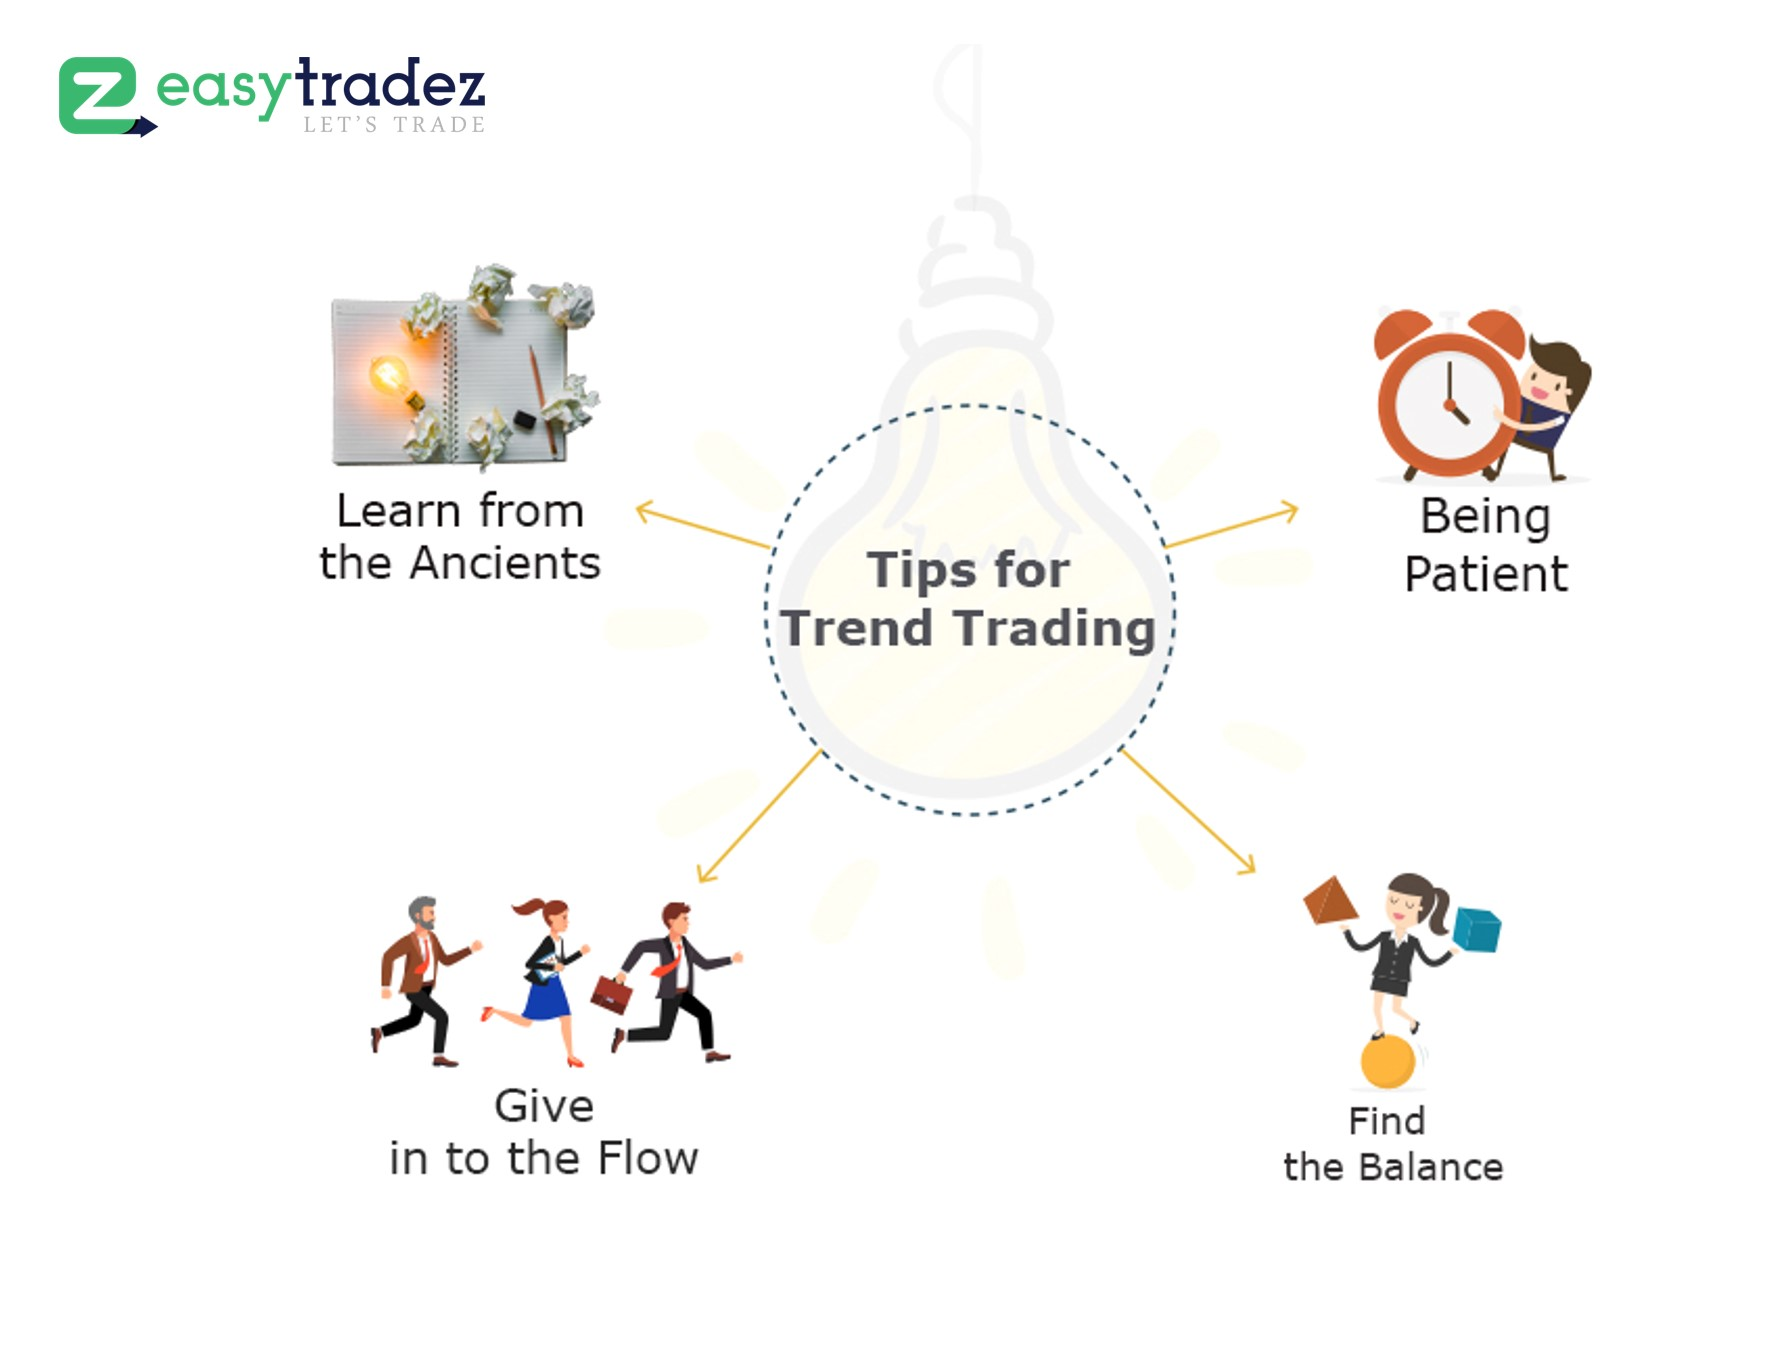 4 Tips and Tricks that Can Help Convert Trend Trading into an Art Form